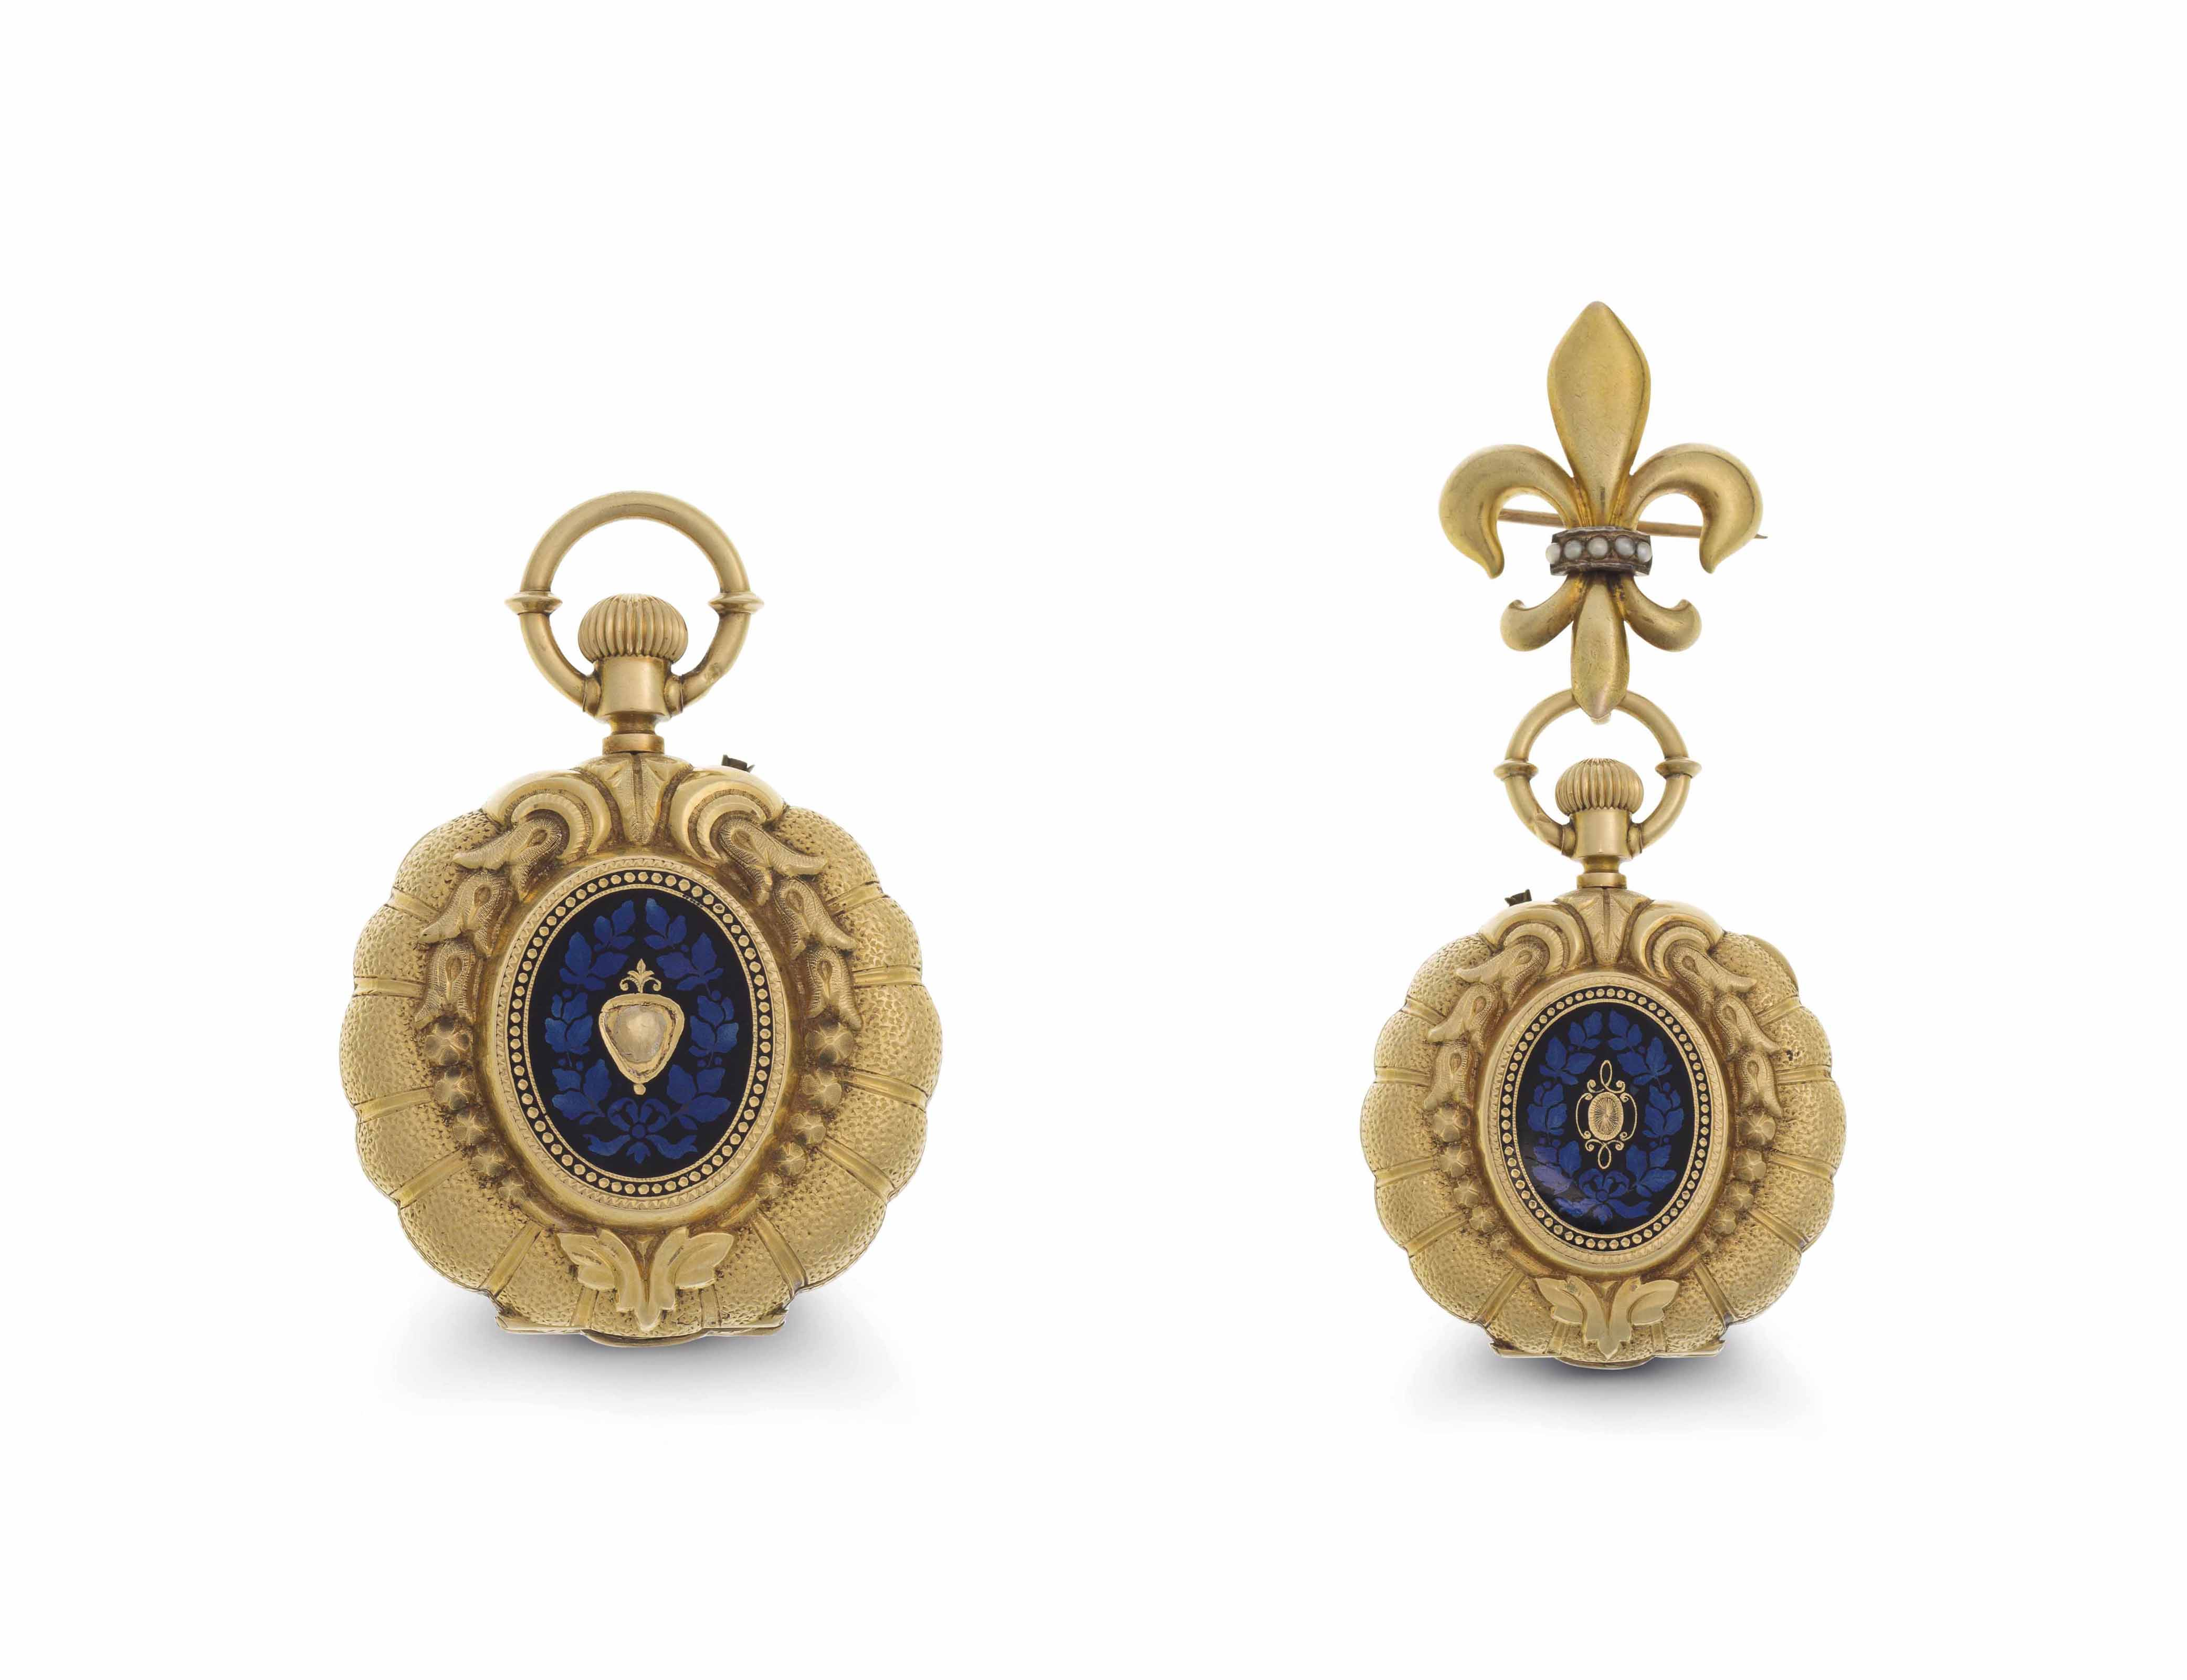 Degeilh. An 18k Gold and Ename